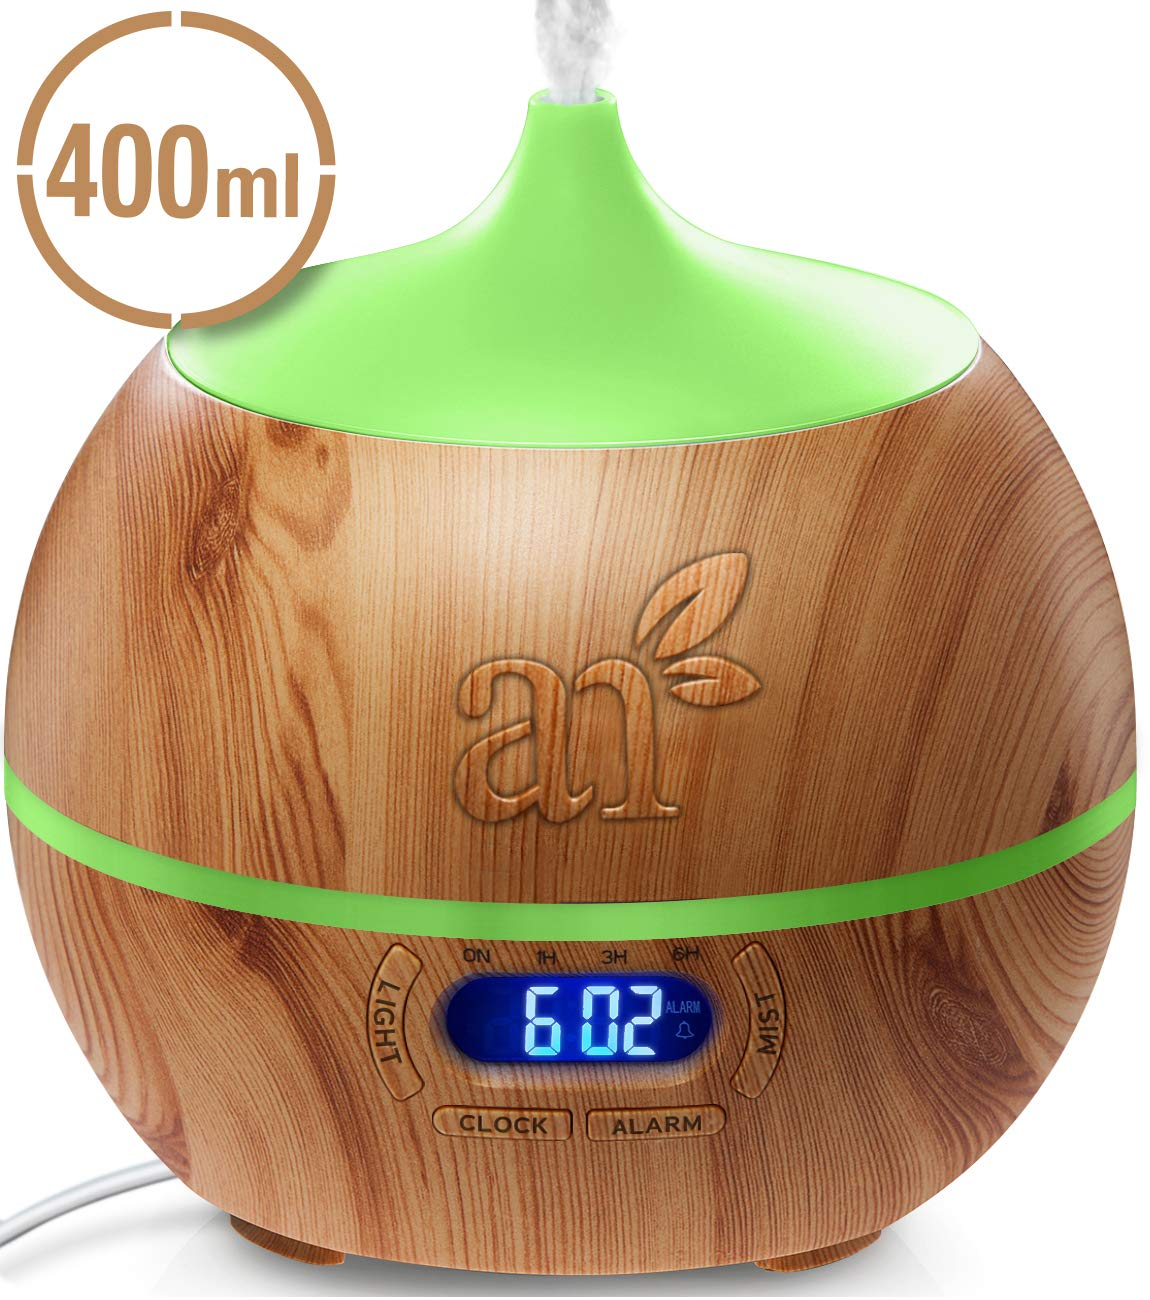 ArtNaturals Essential Oil Diffuser and Humidifier with Bluetooth Speaker Clock - (13.5 Fl Oz / 400ml Tank) - Electric Cool Mist Aromatherapy for Office, Home, Bedroom, Baby Room 7 Color LED Lights